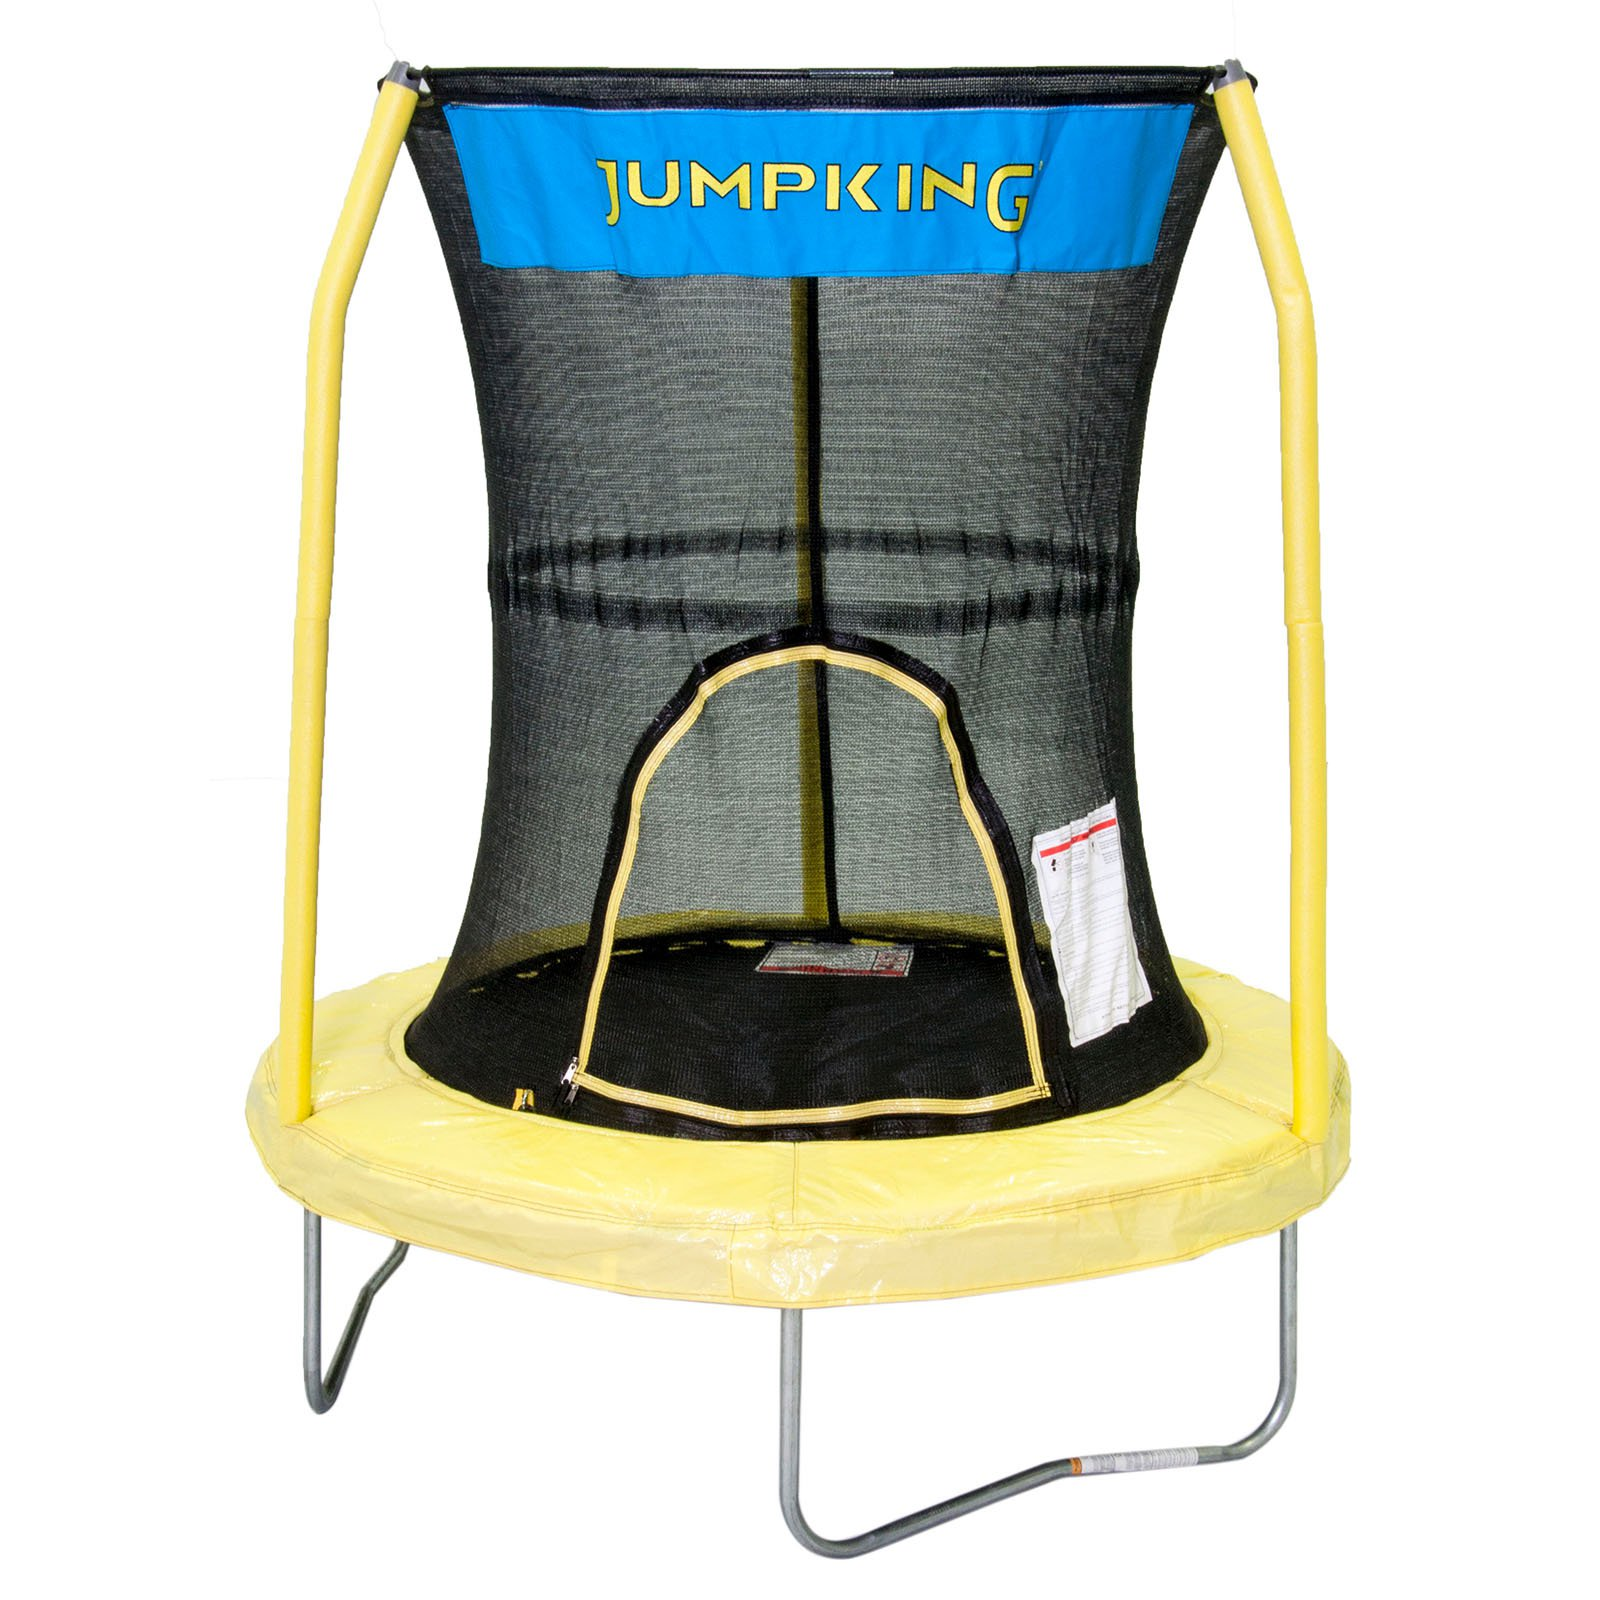 JumpKing 55-Inch Trampoline, with Safety Enclosure, Yellow